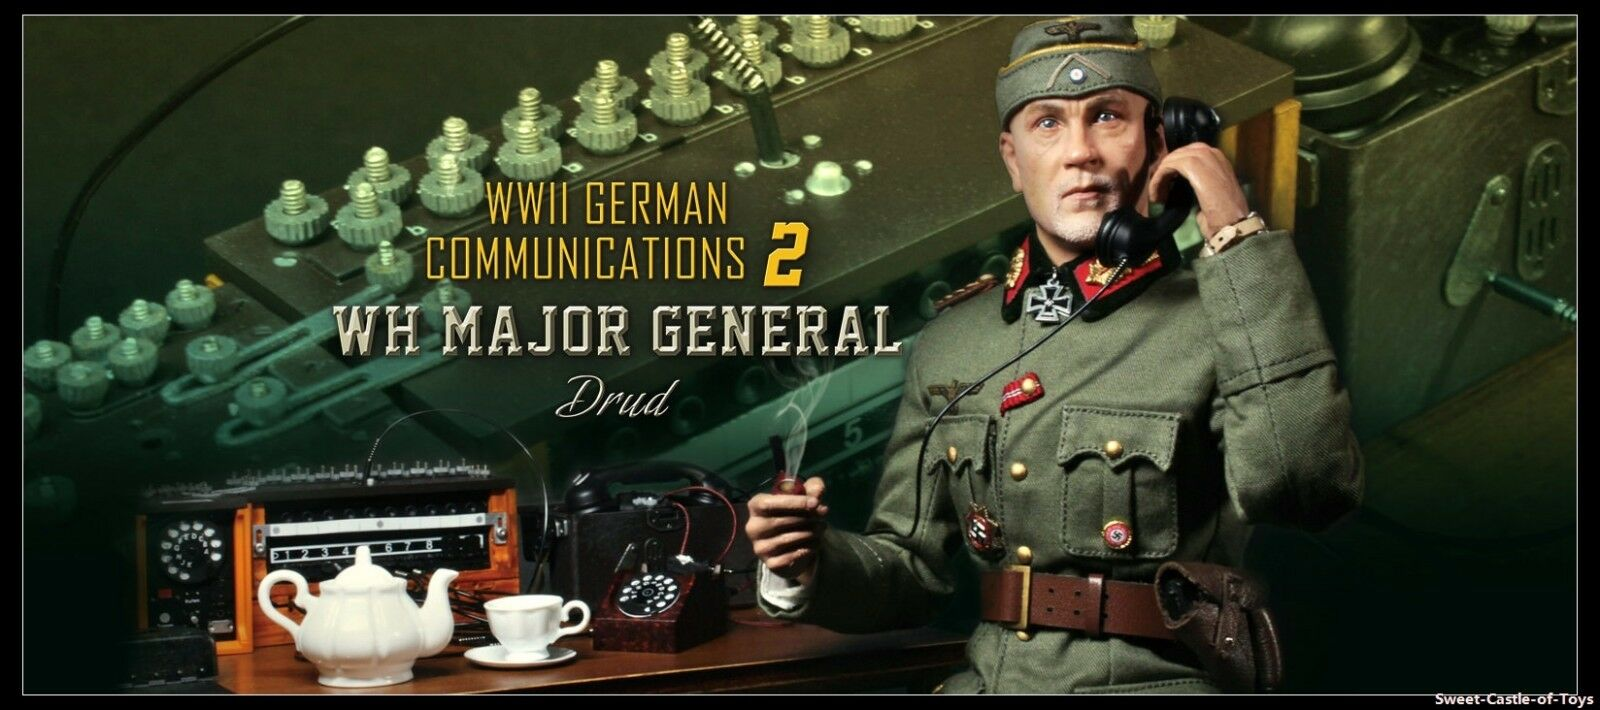 1 6 DID Action Figure WWII German Communications 2 WH Major General Drud D80123